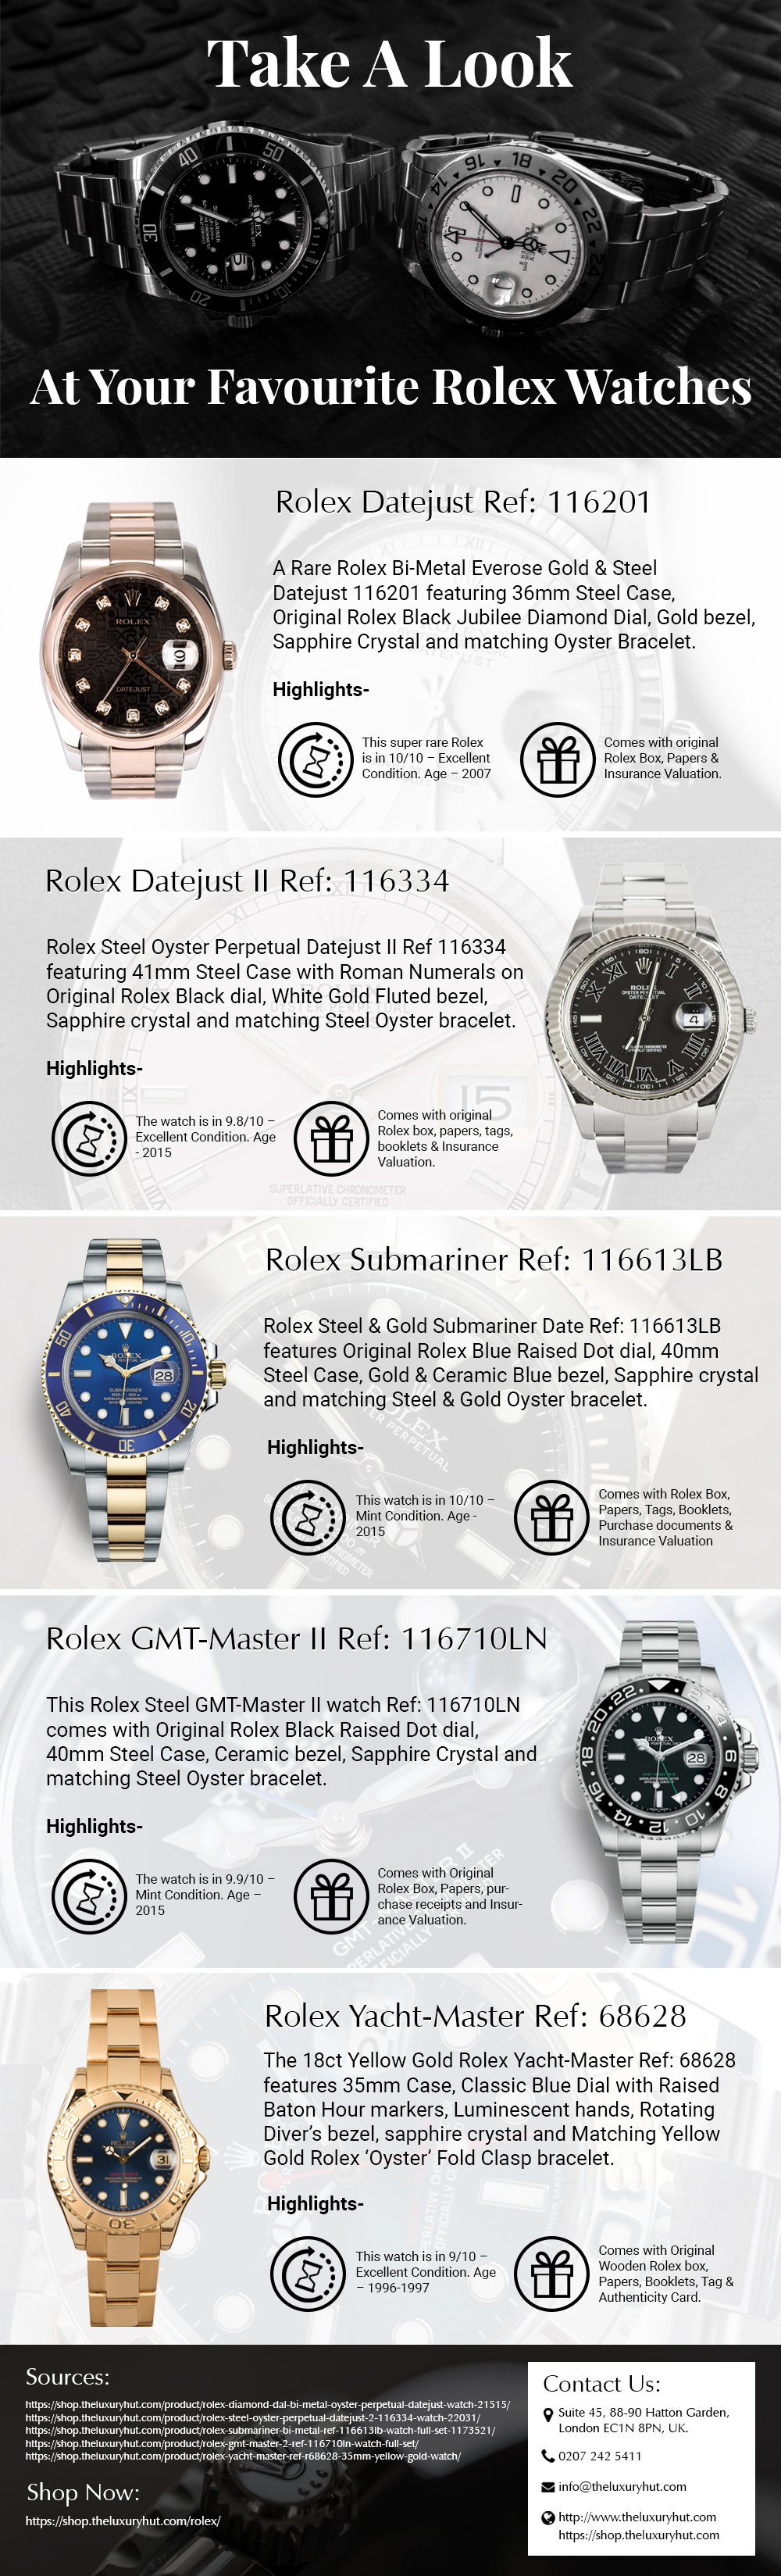 sellrolexwatch